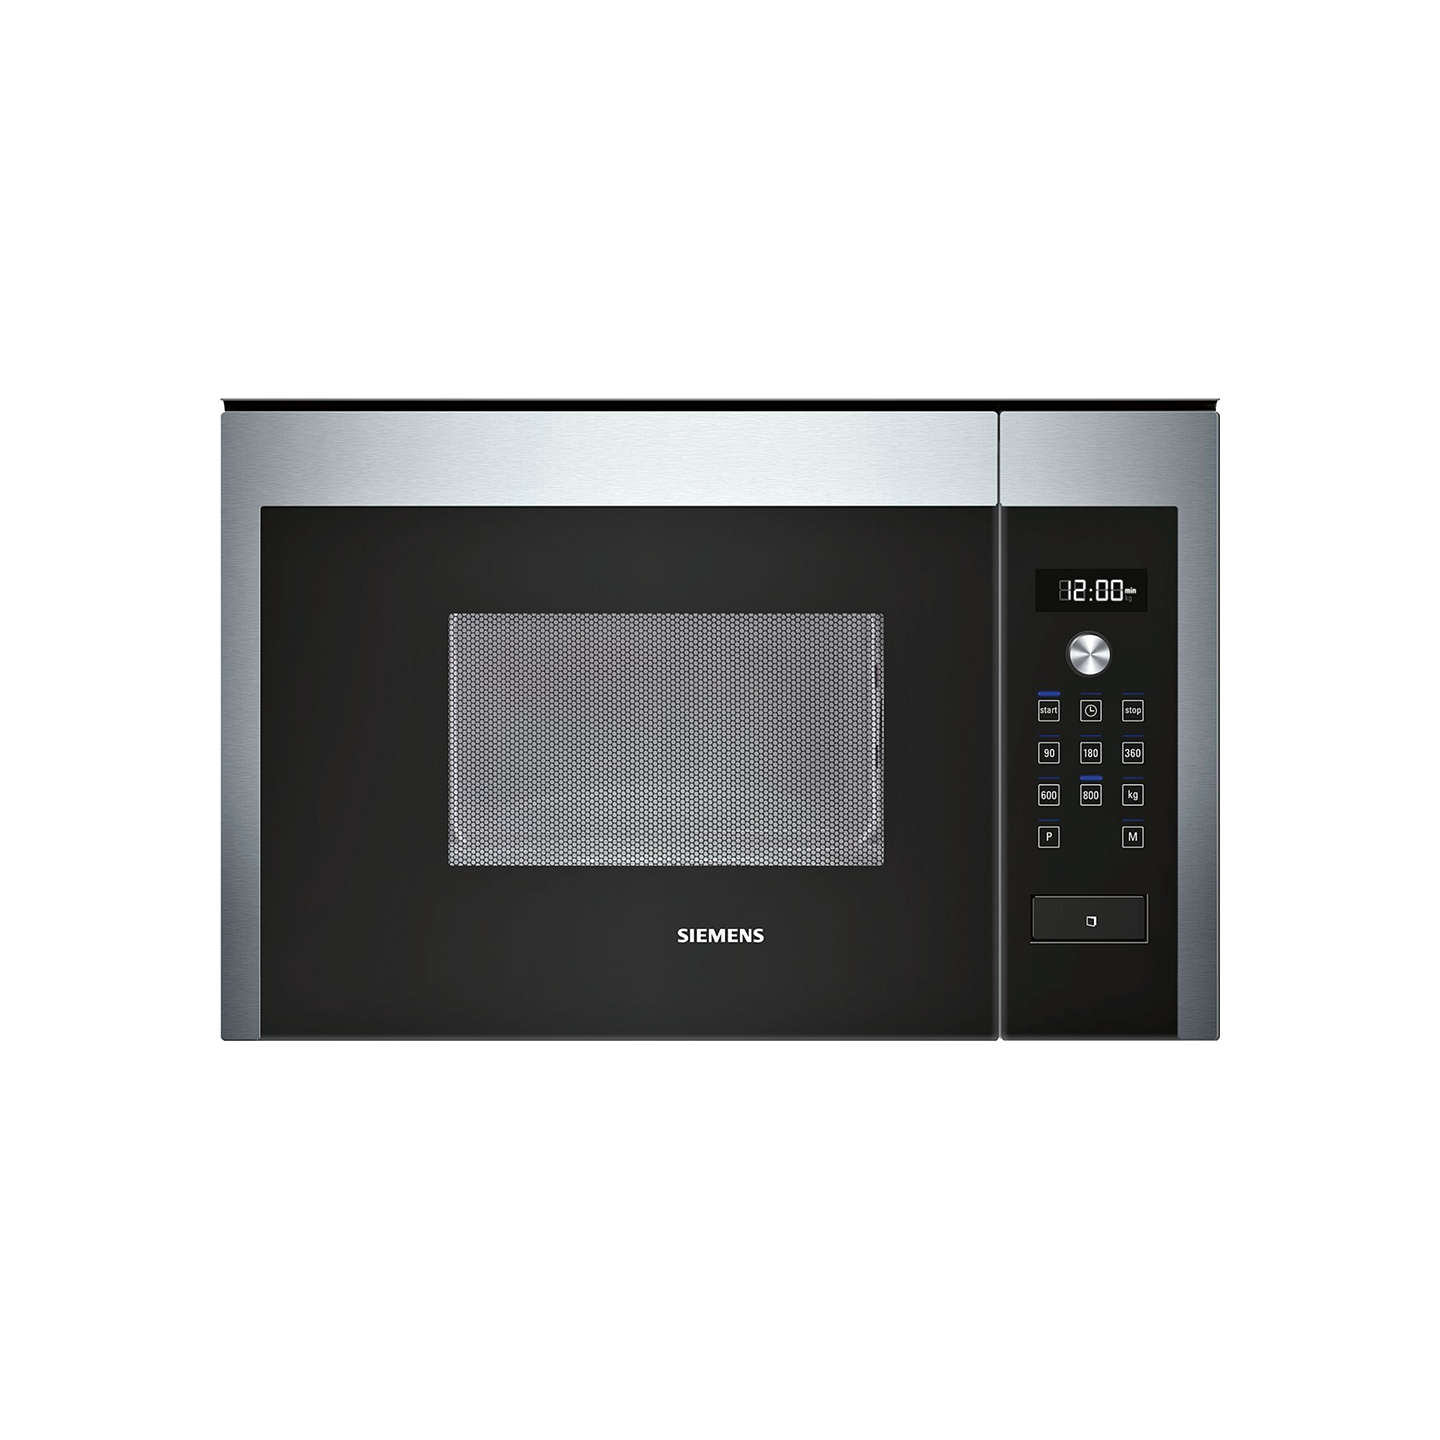 Siemens Hf15m564b Compact Microwave Oven Stainless Steel Online At Johnlewis